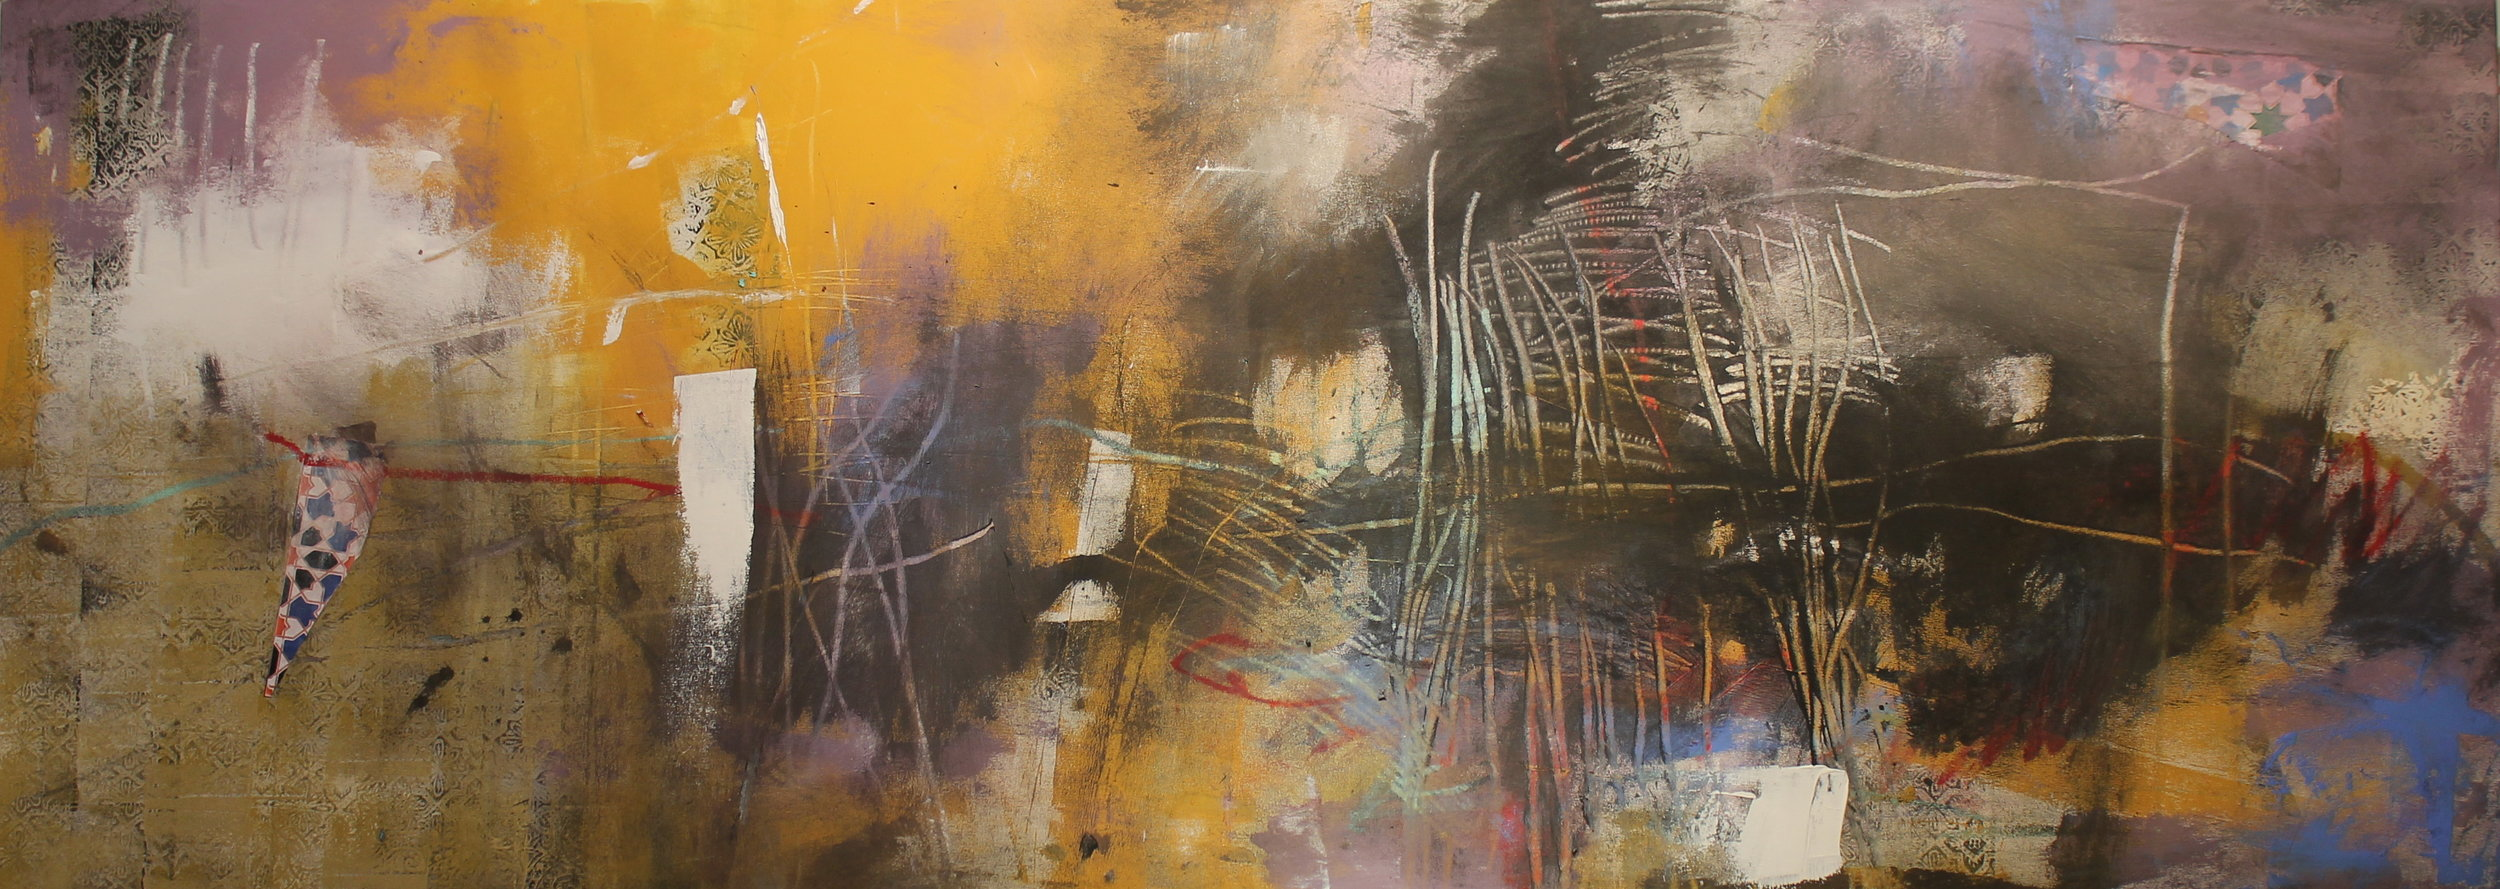 """""""Co-emergence""""   76 x 183cm   Oil, acrylic and collage on canvas"""